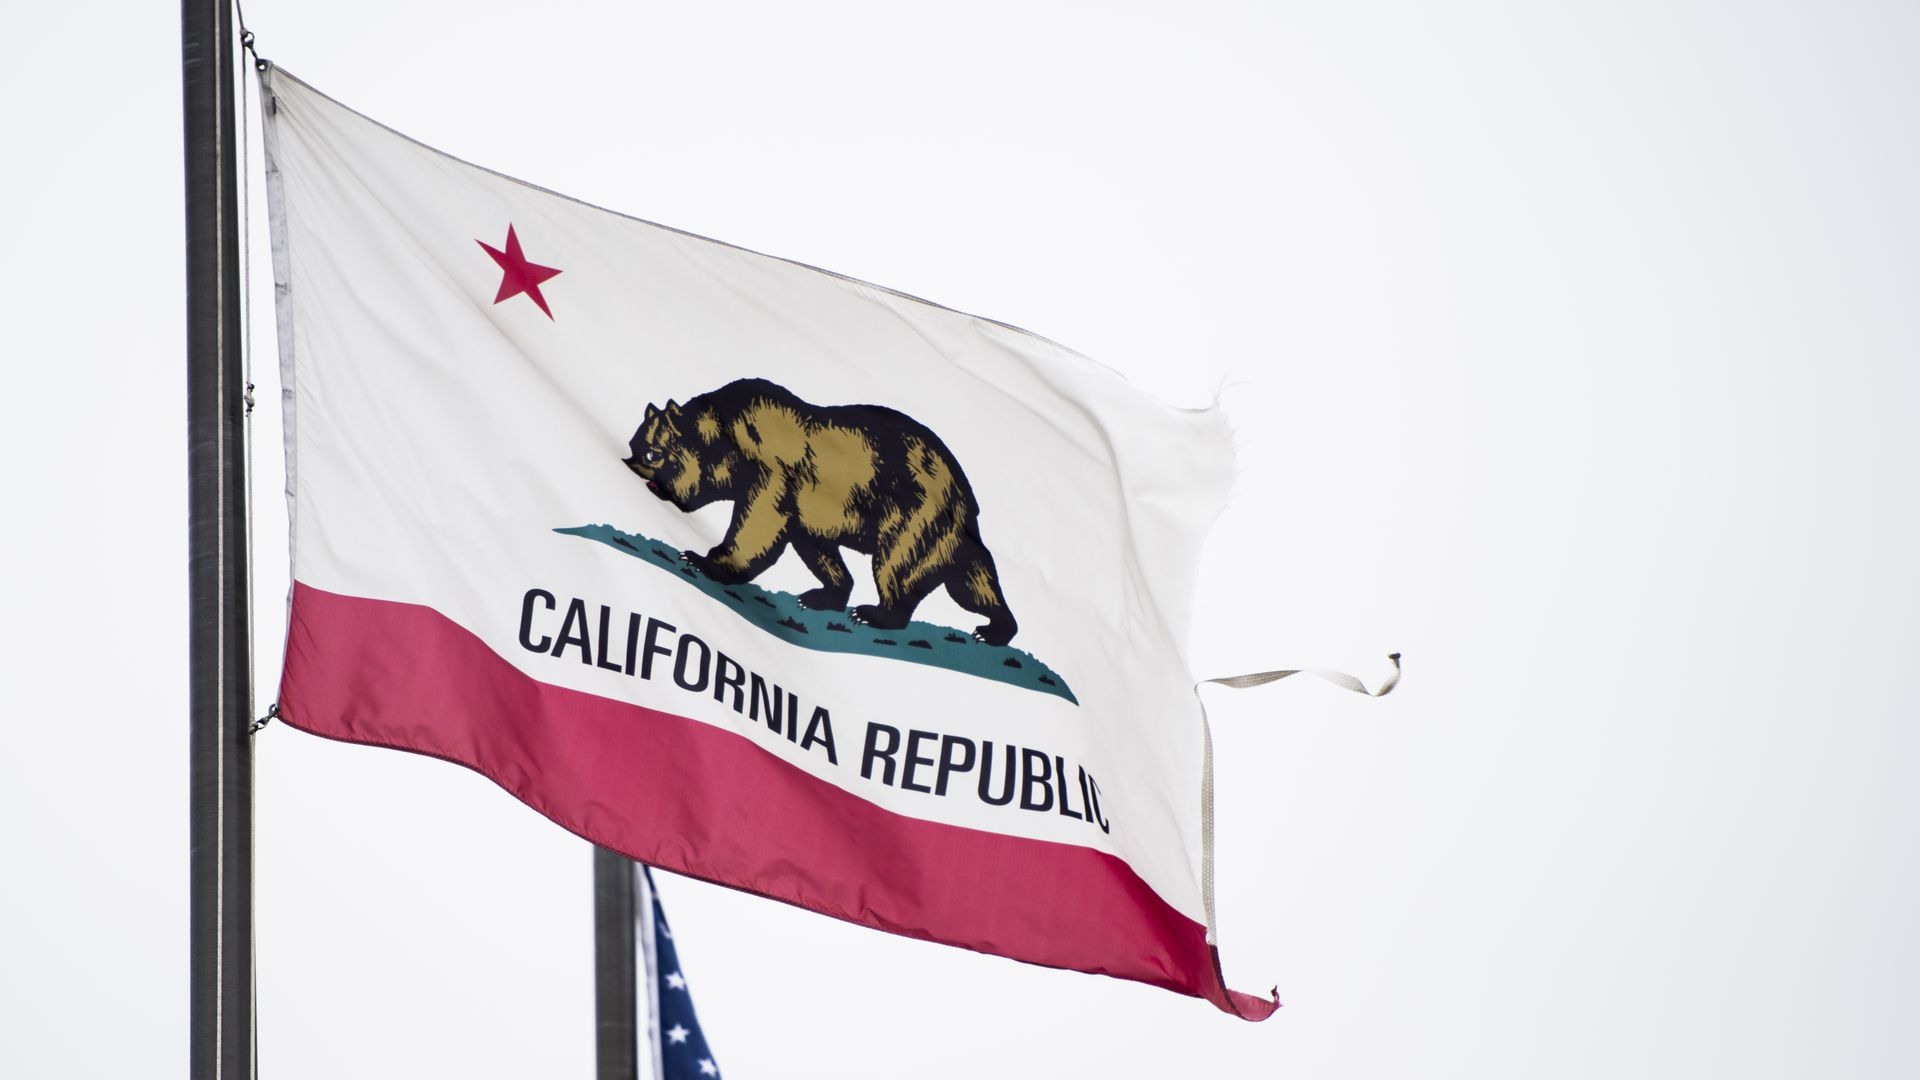 california-data-privacy-law